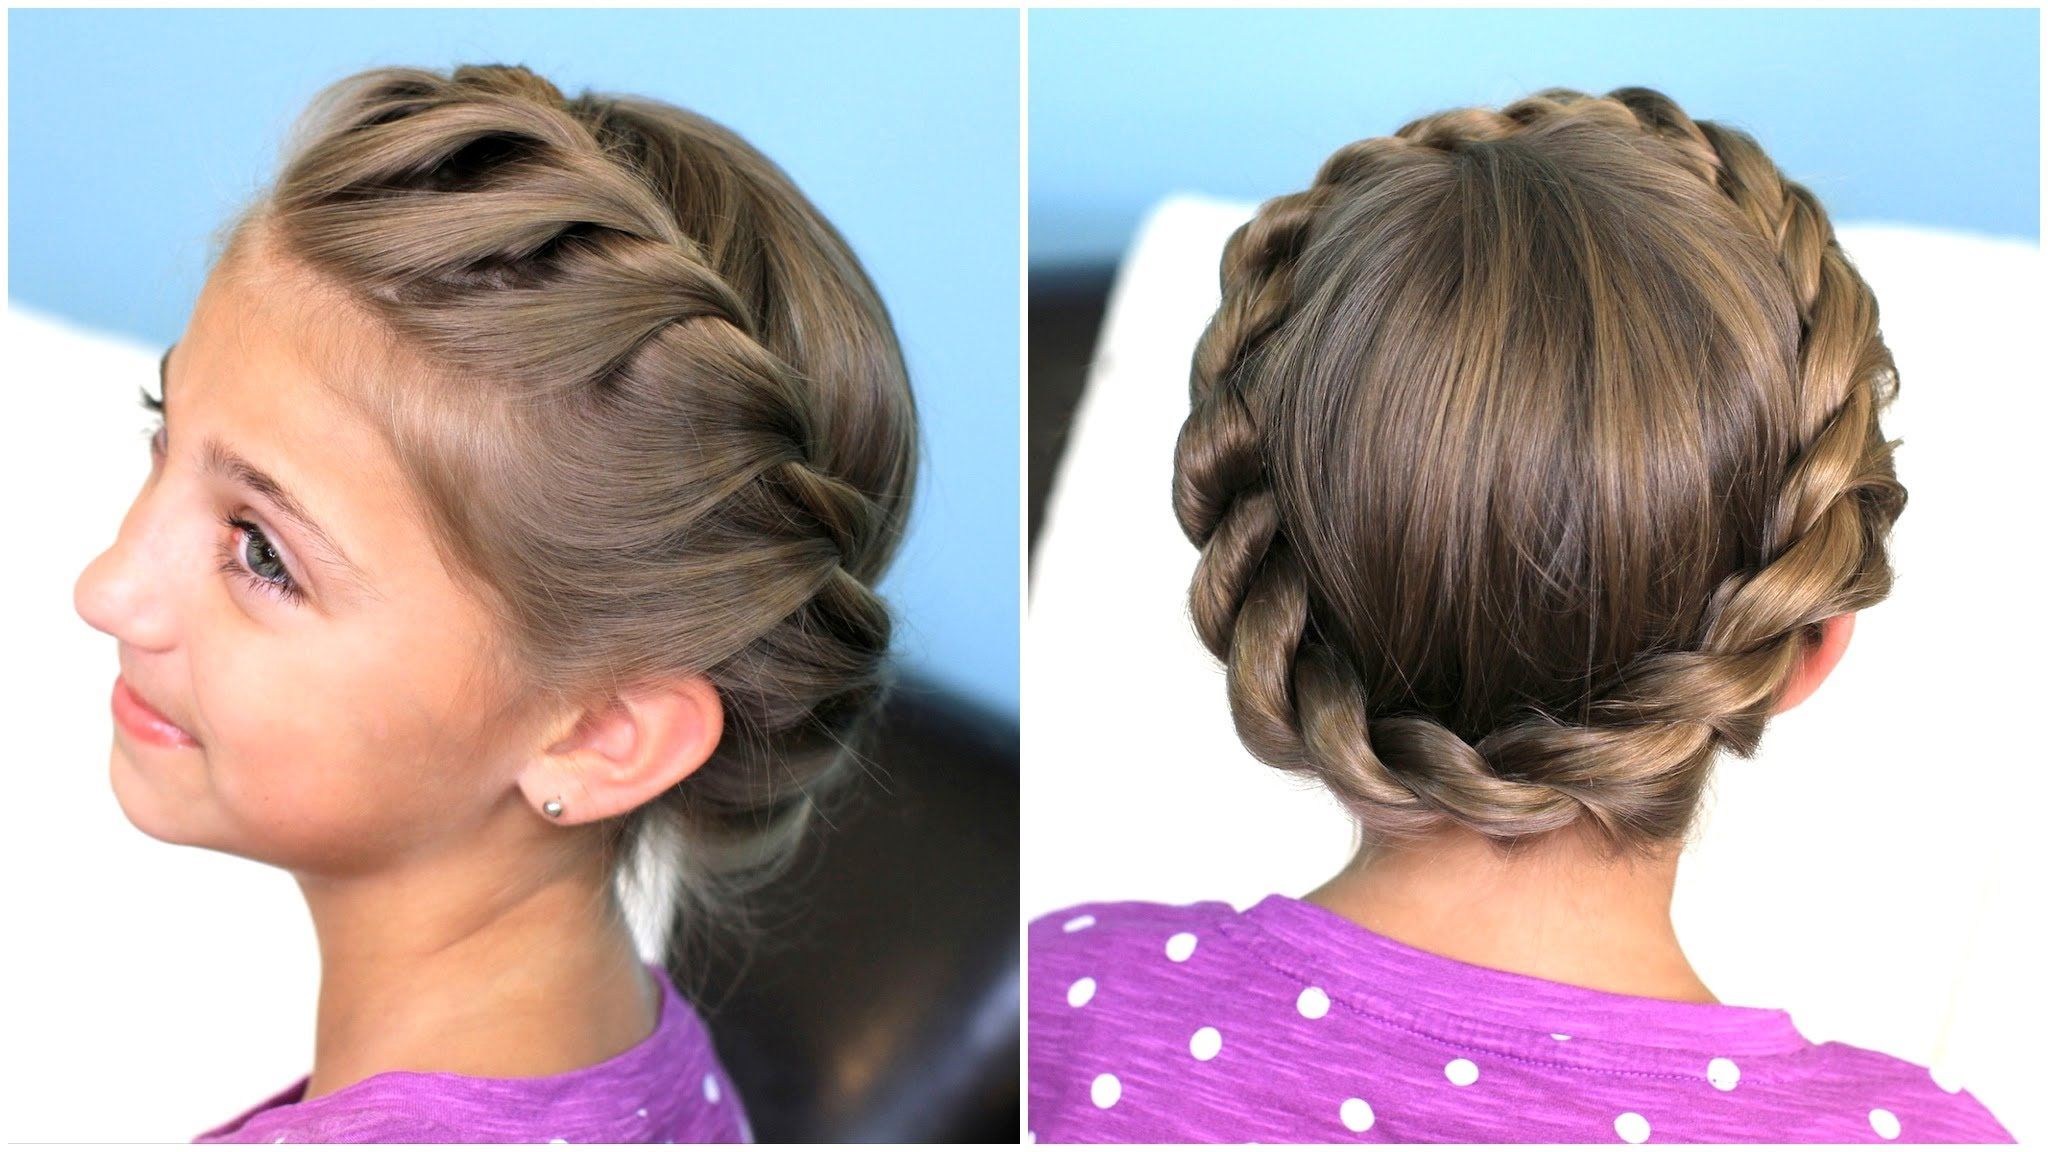 Twist Hairstyle Captivating How To Create A Crown Twist Braid  Updo Hairstyles  Hair 2